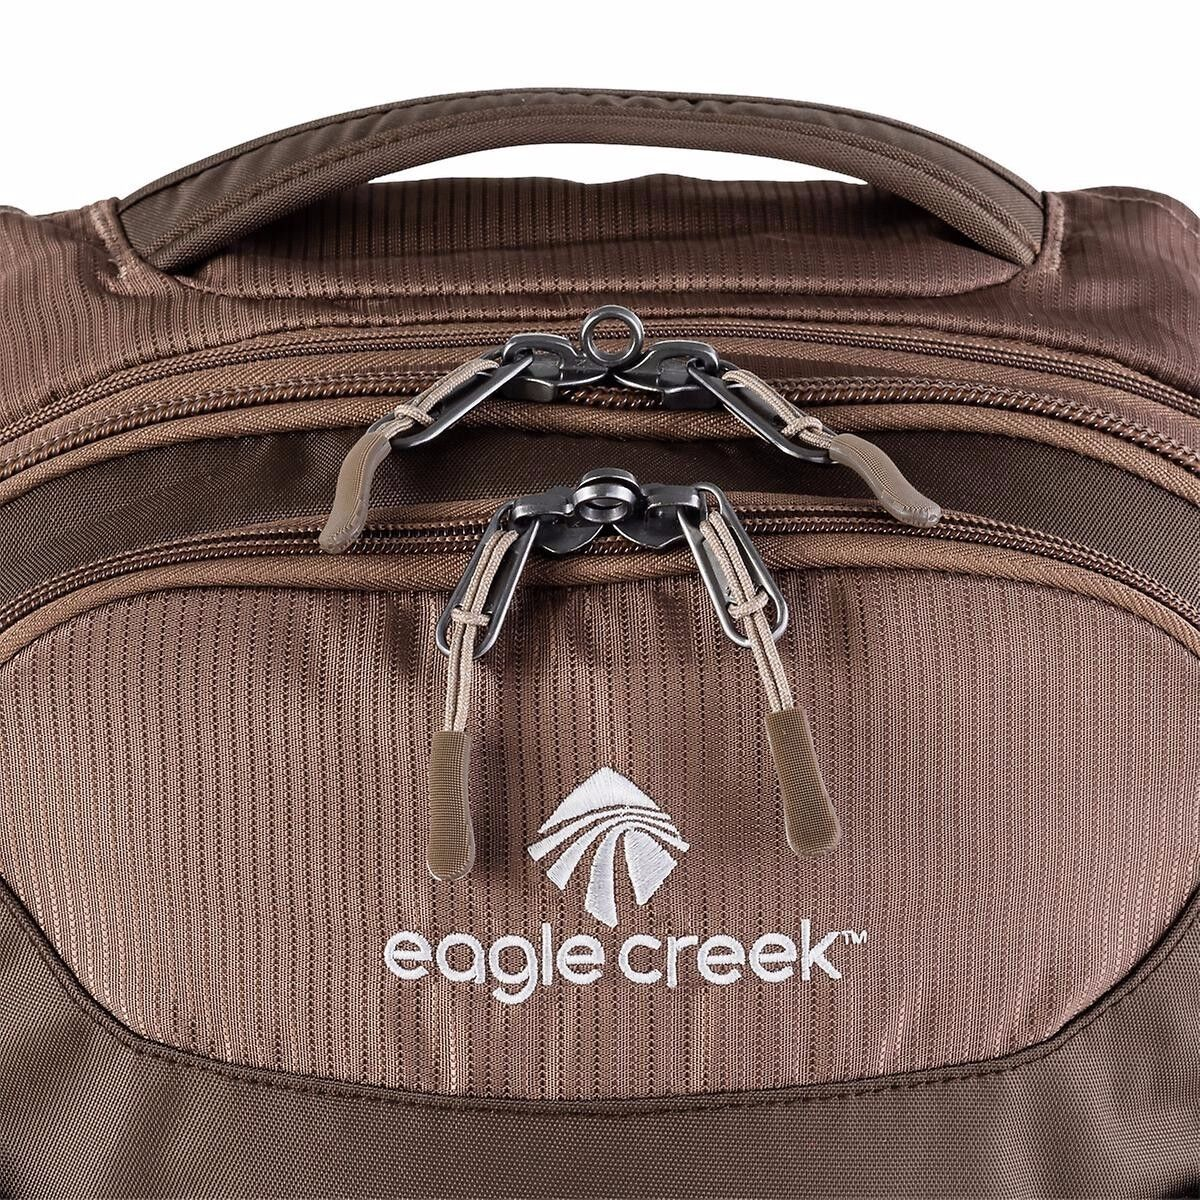 Eagle Cove EC Lync System International Carry-On Luggage/BackPack NEW